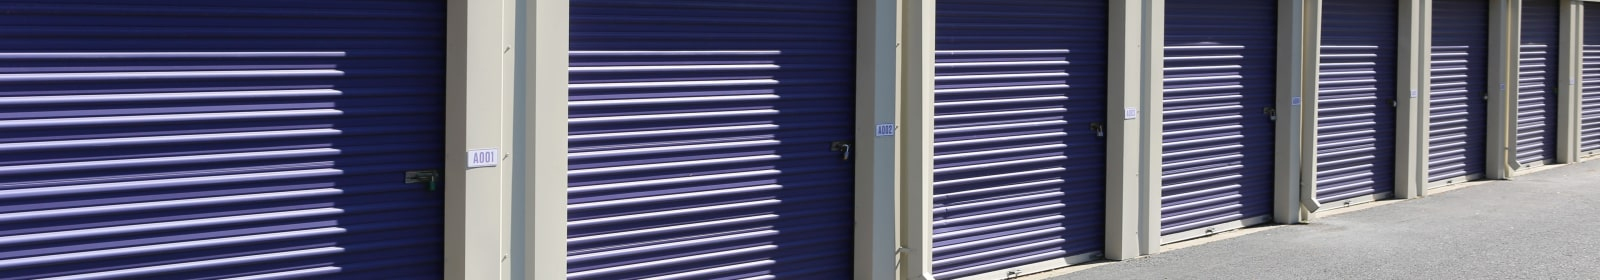 StoreSmart Self-Storage units in Melbourne, Florida